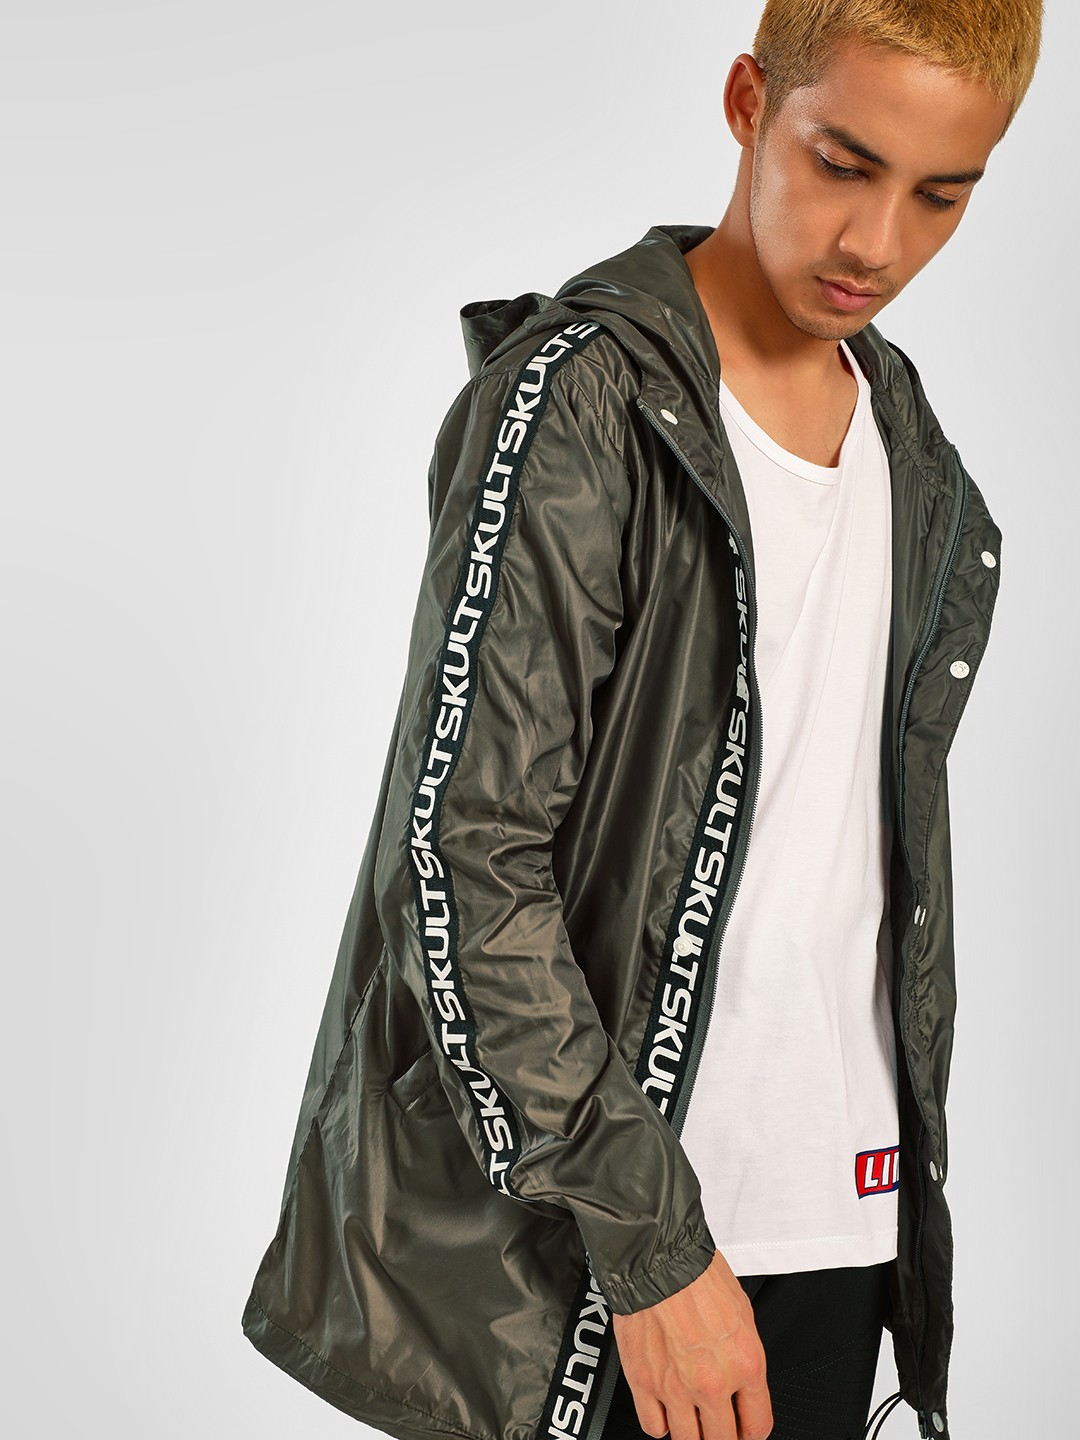 SKULT By Shahid Kapoor Green Text Tape Hooded Jacket 1